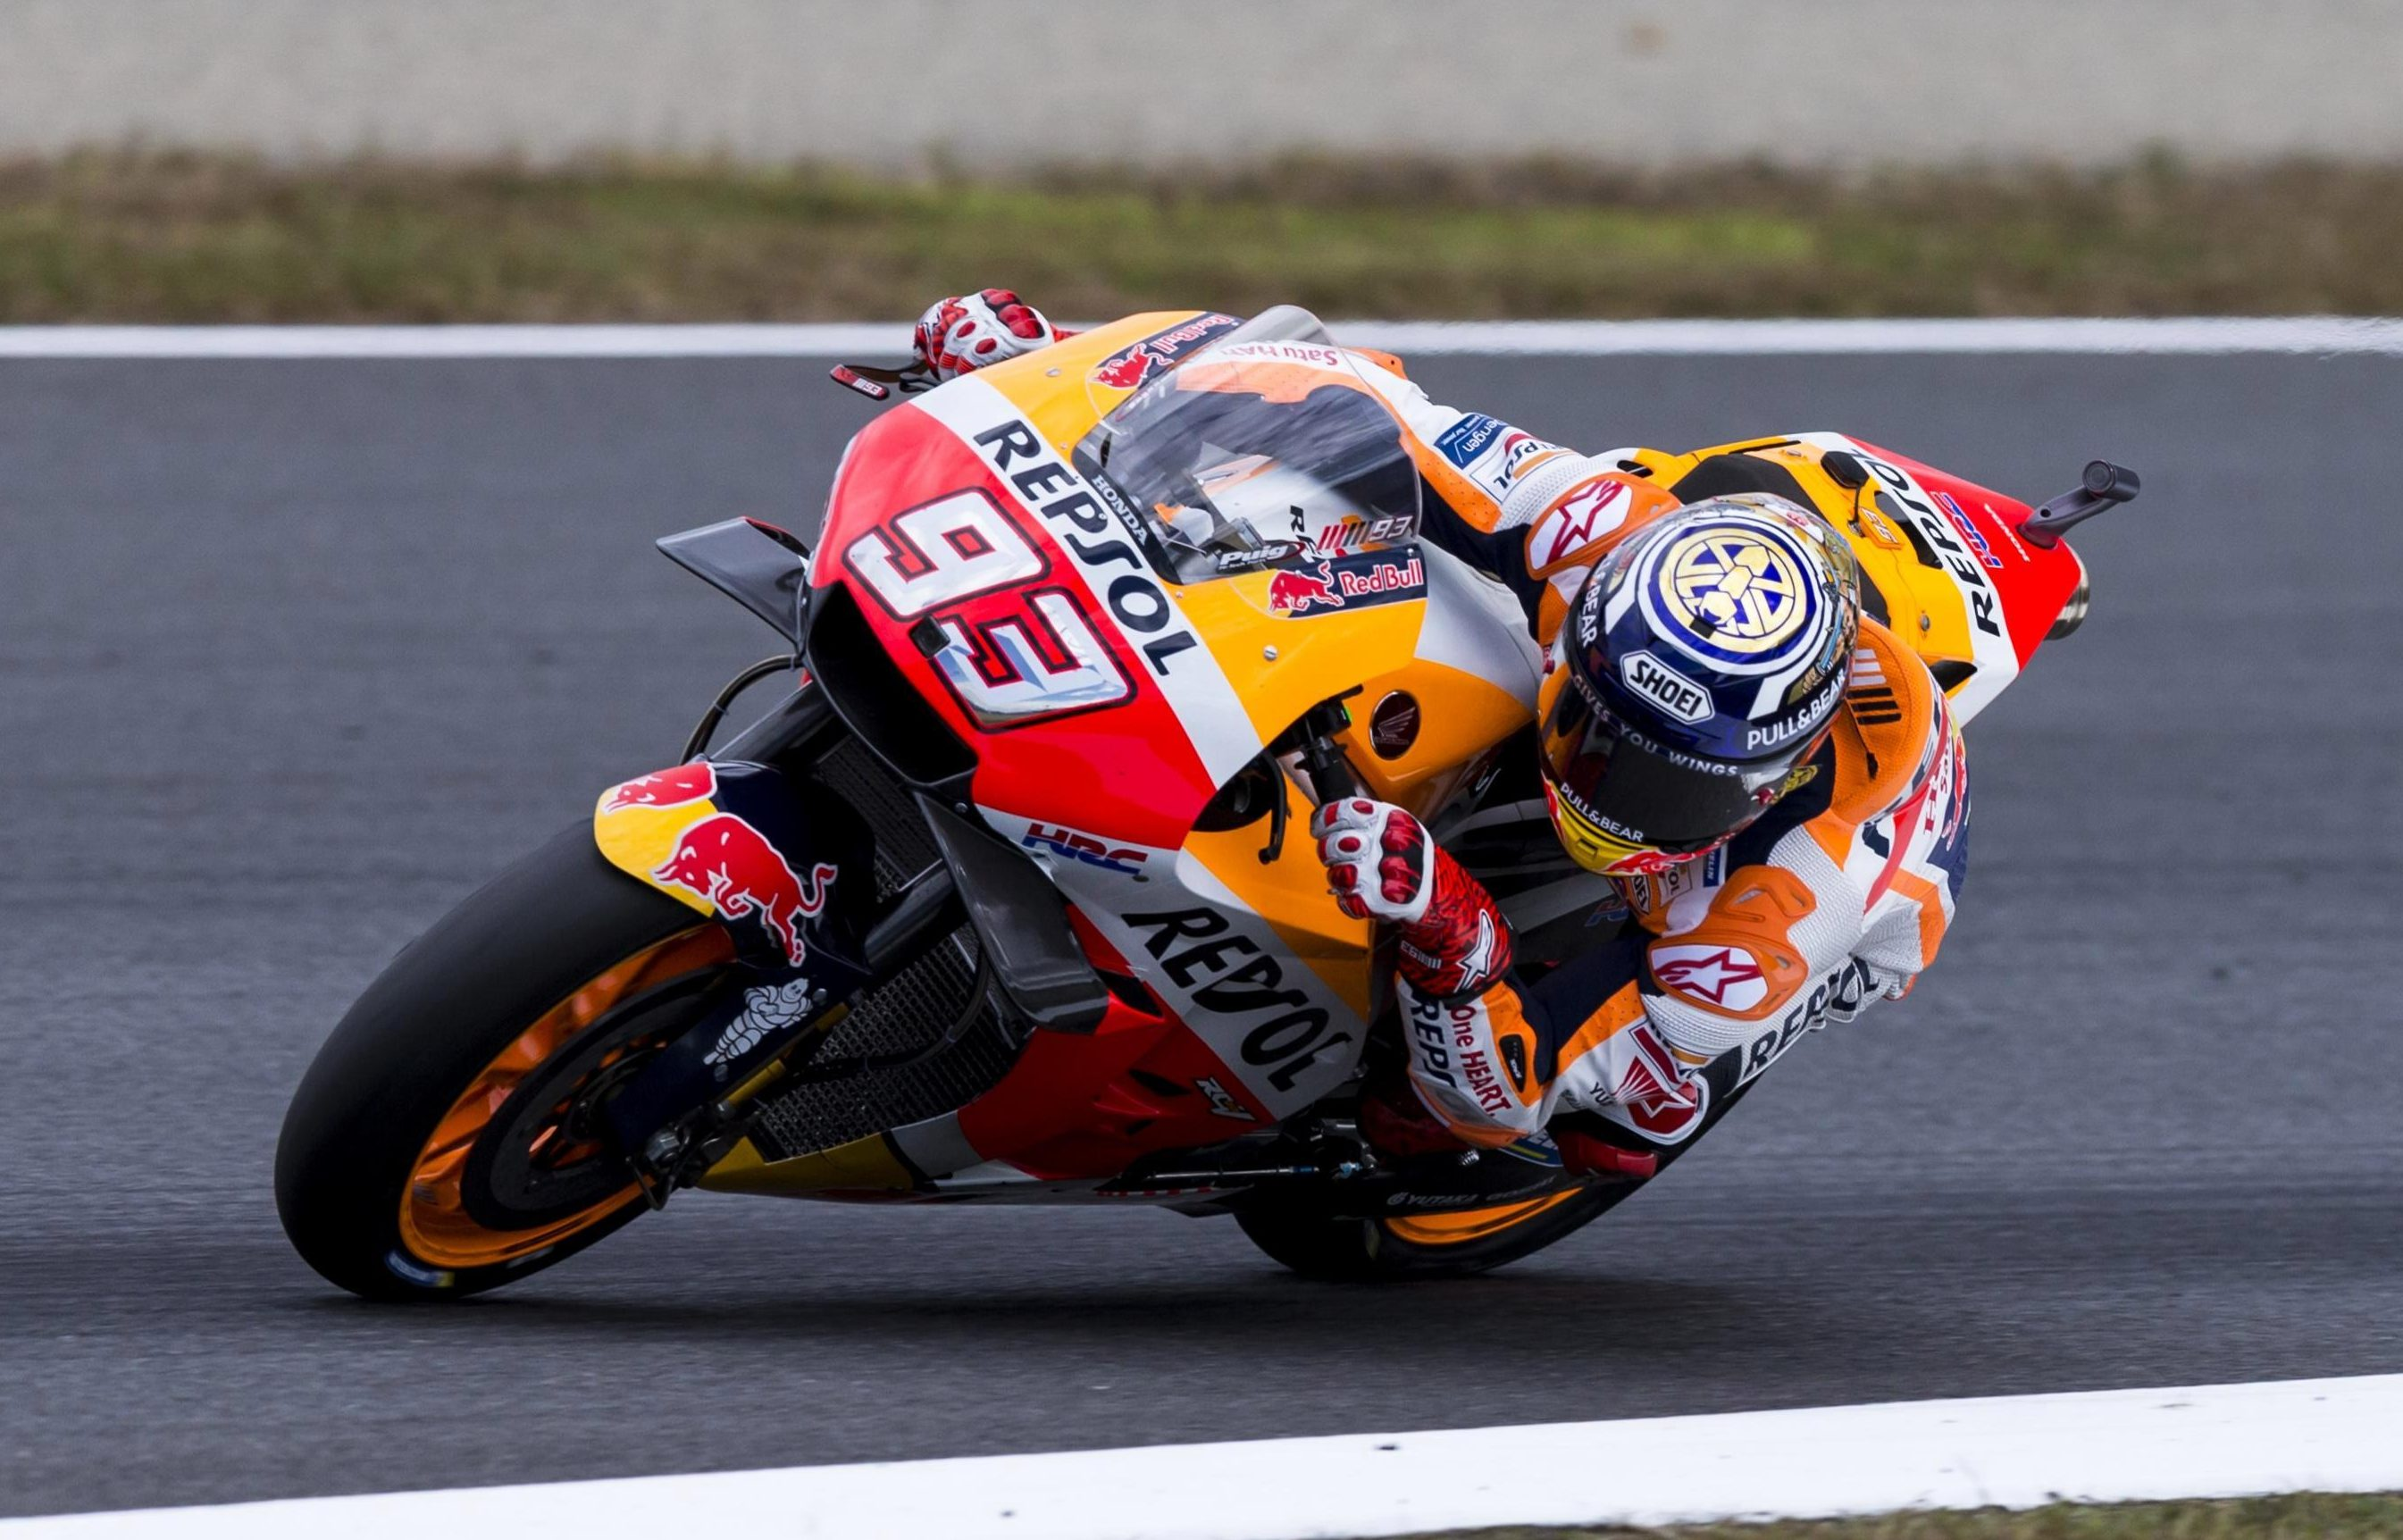 Motogp Japan 2018 Live Stream What Tv Channel And Start Time For